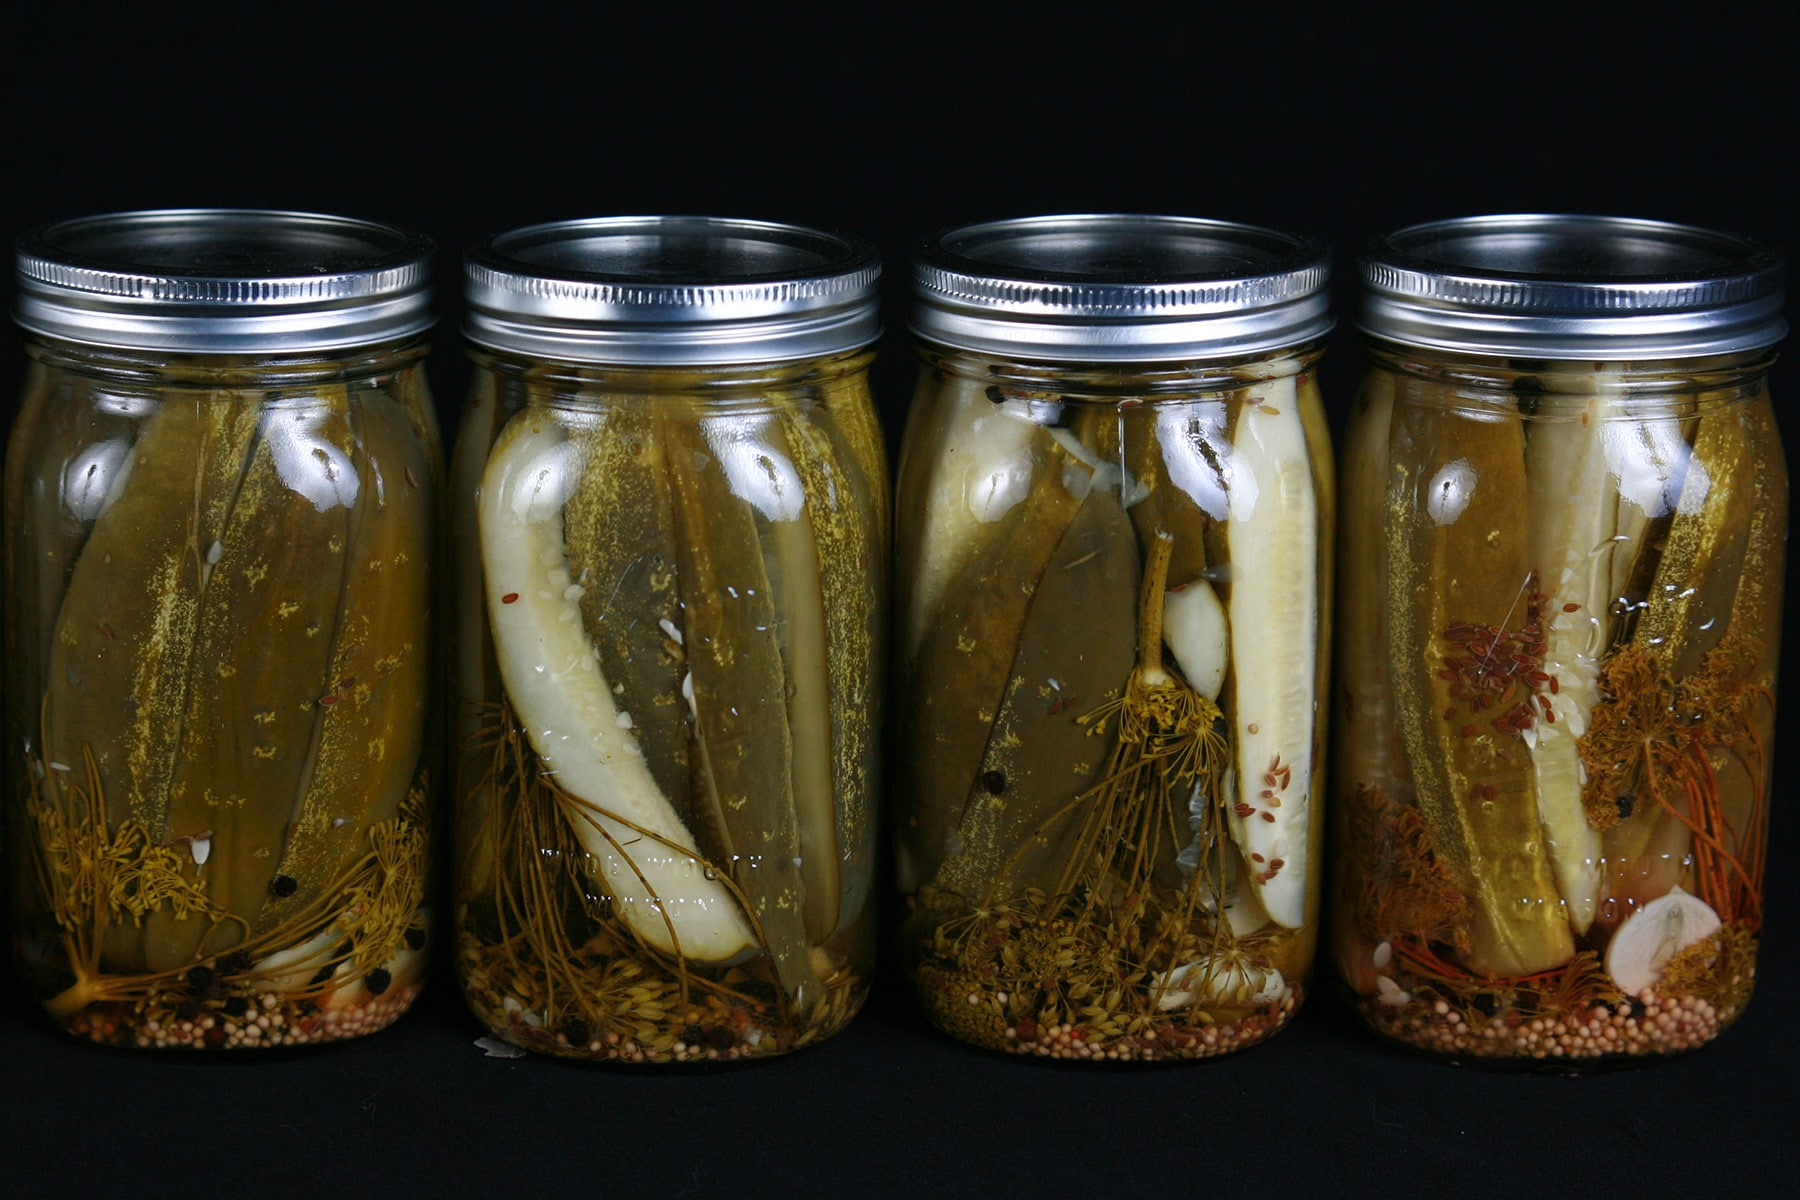 A line of 4 large jars of homemade dill pickles.